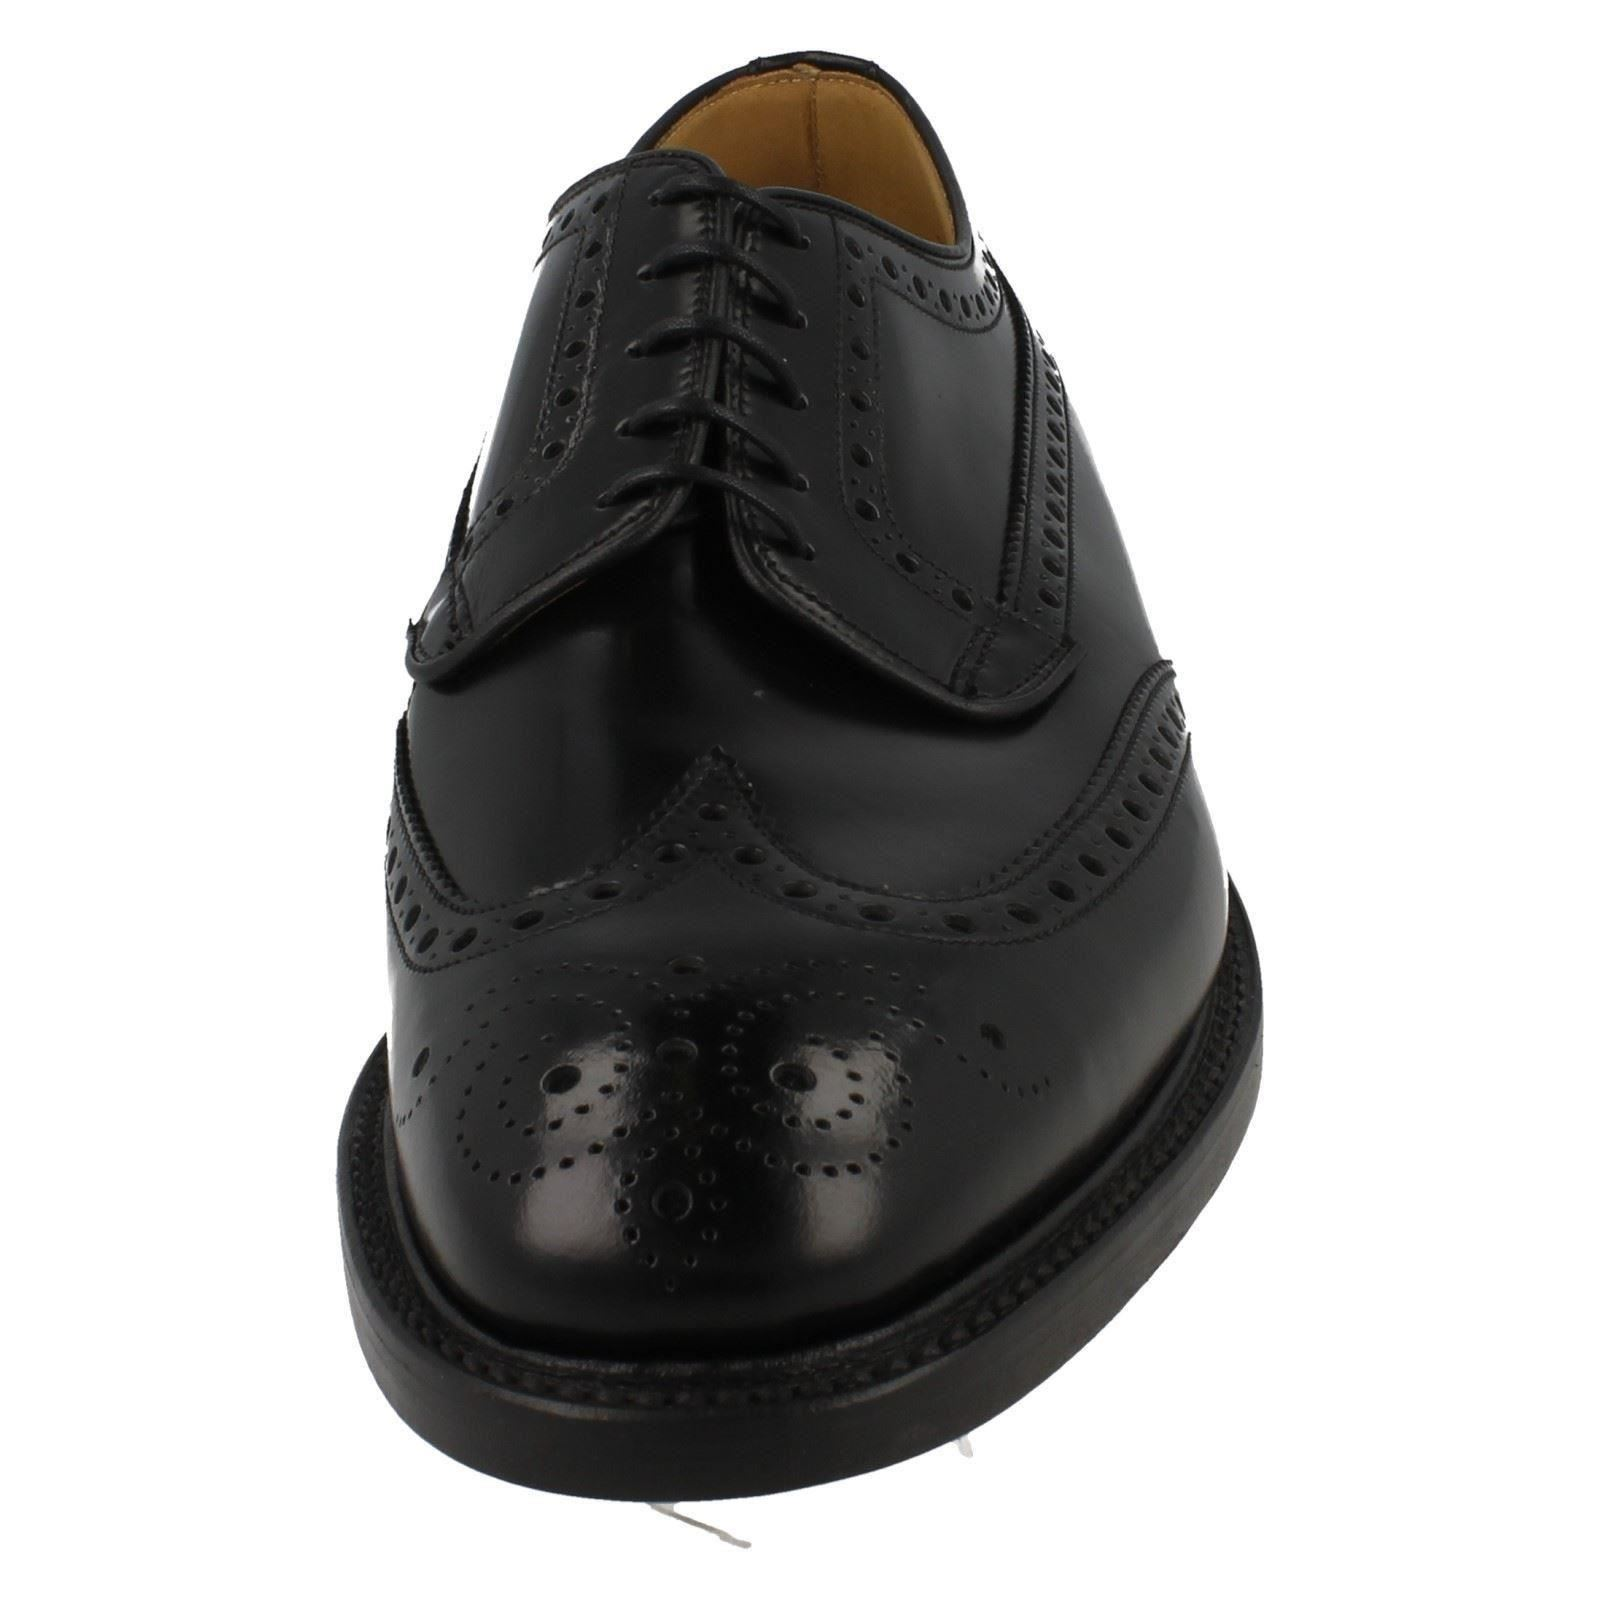 mens loake formal brogue shoes fitting f style braemar